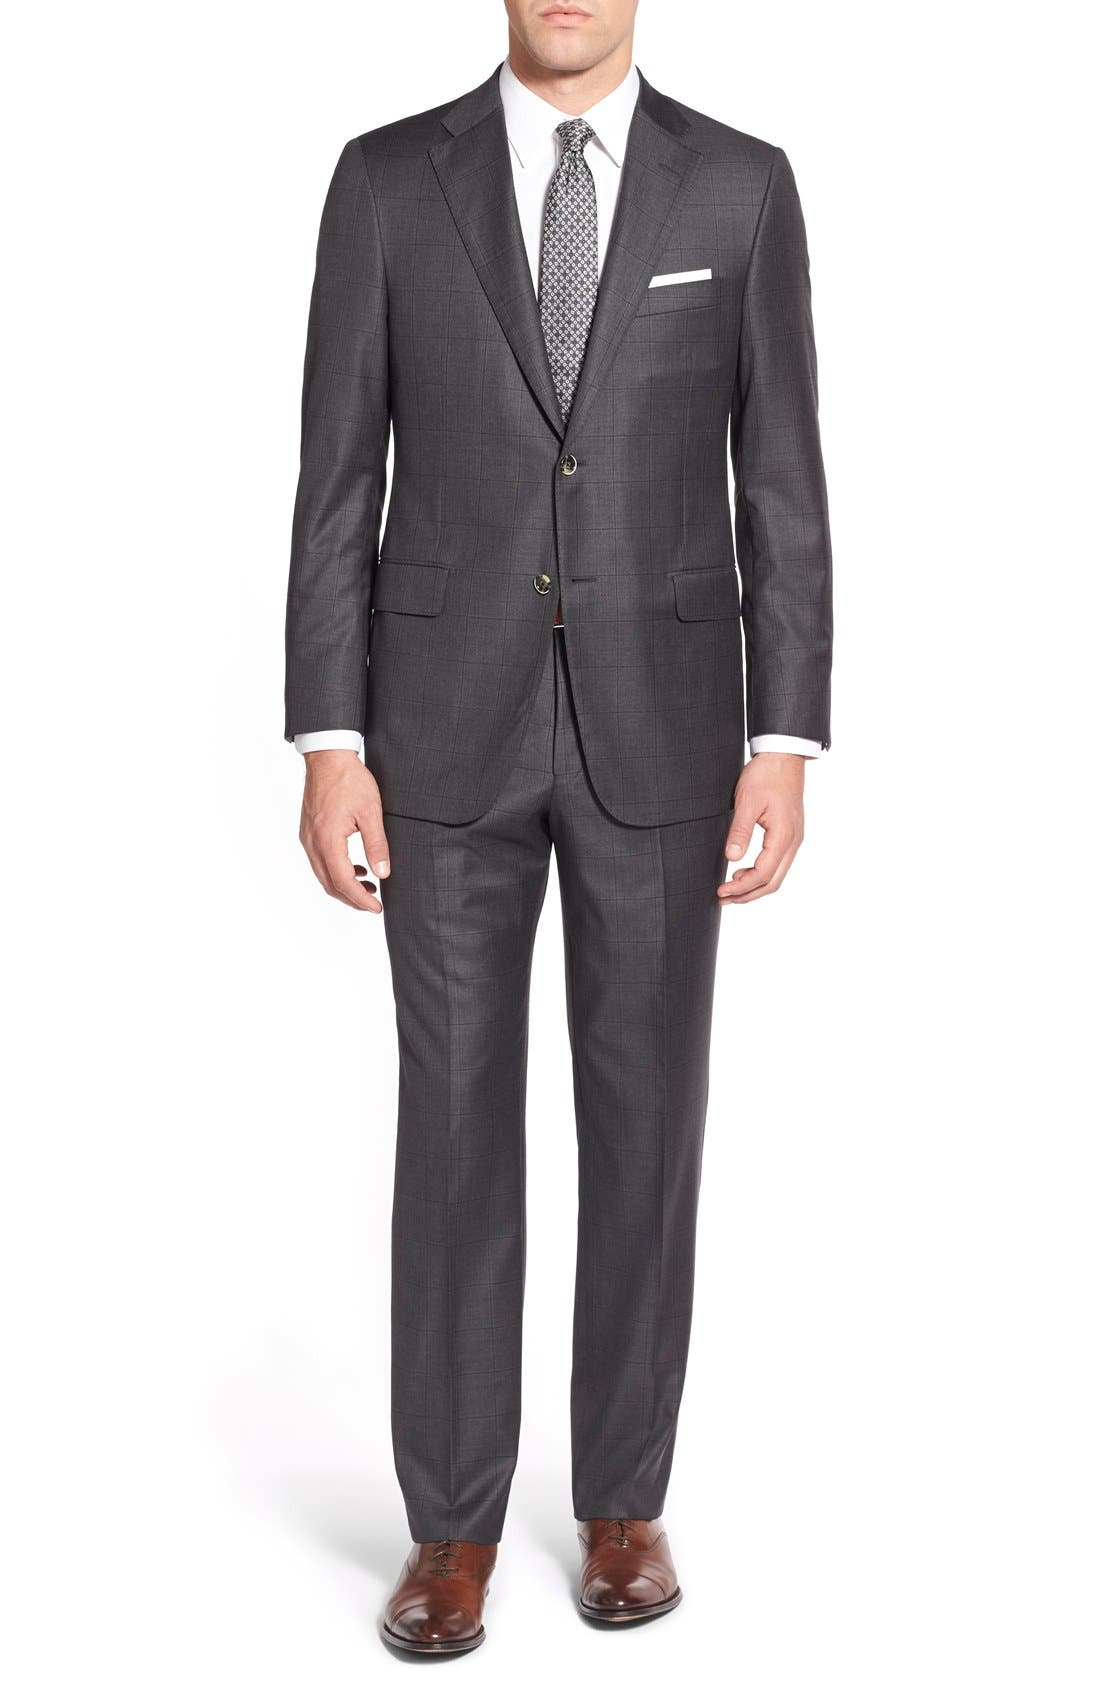 HICKEY FREEMAN Beacon B Classic Fit Windowpane Wool Suit